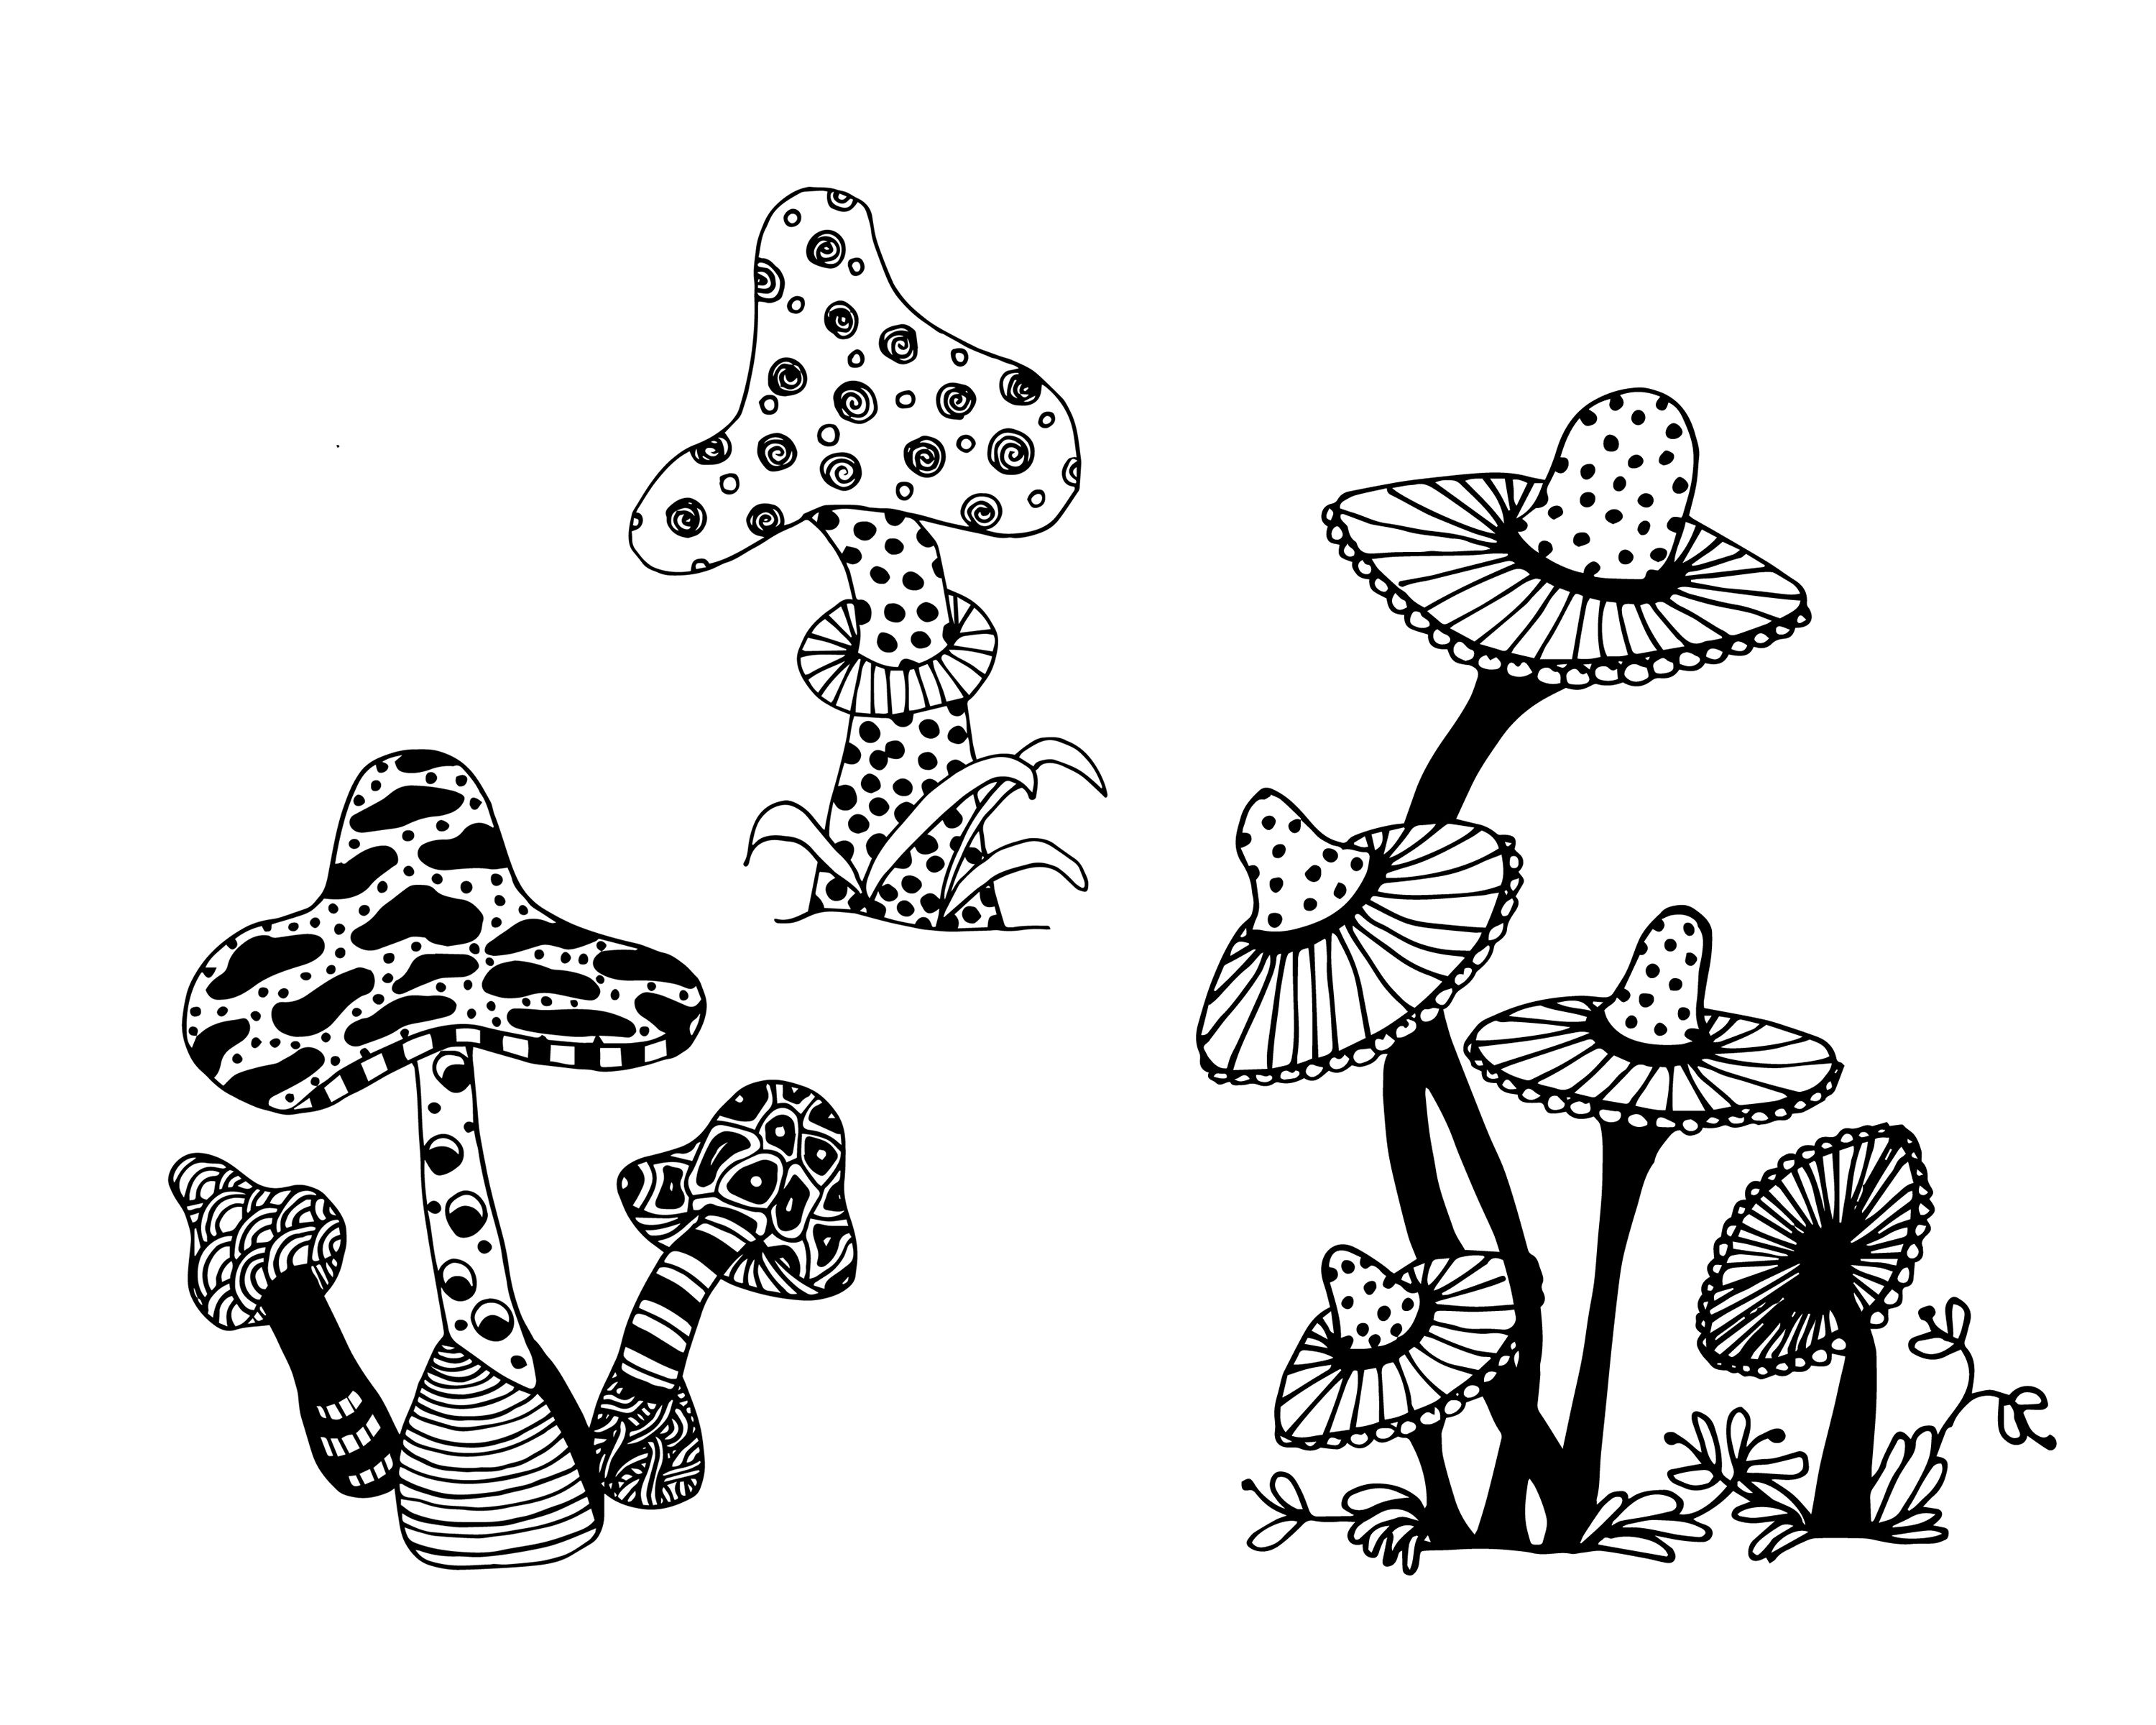 FREE Mushrooms Adult Coloring Page | ✐Adult Colouring~Mushrooms ...